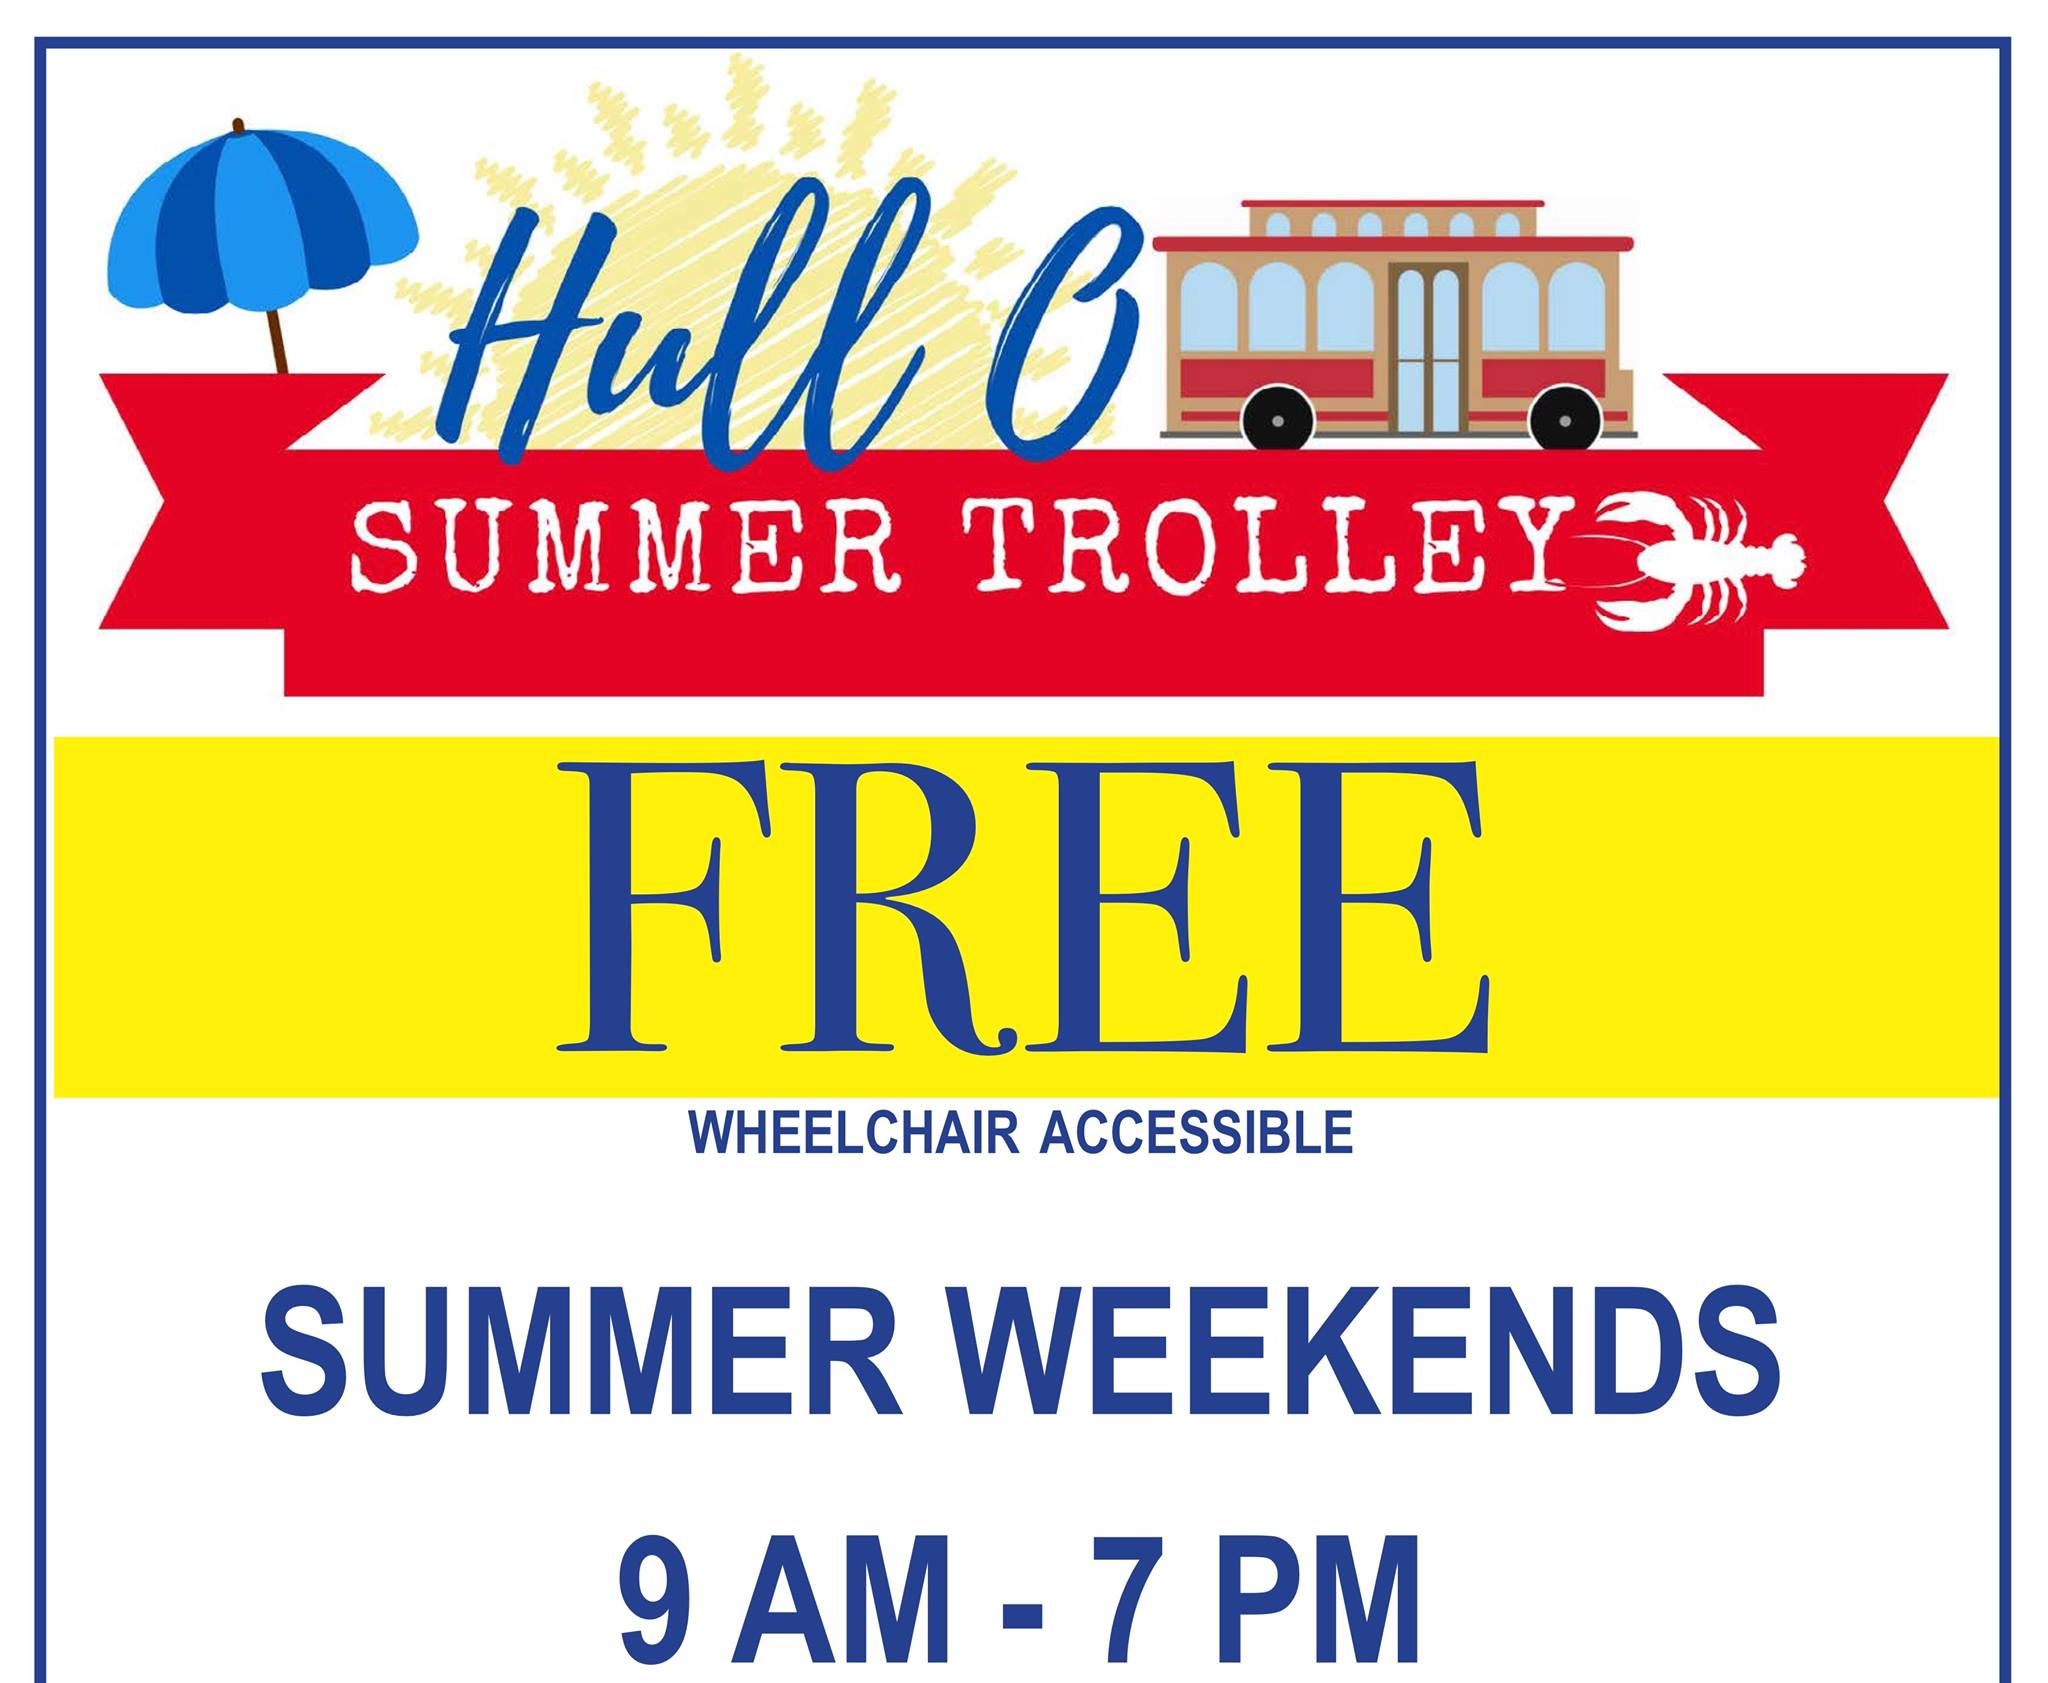 Hull O Trolley logo.jpg